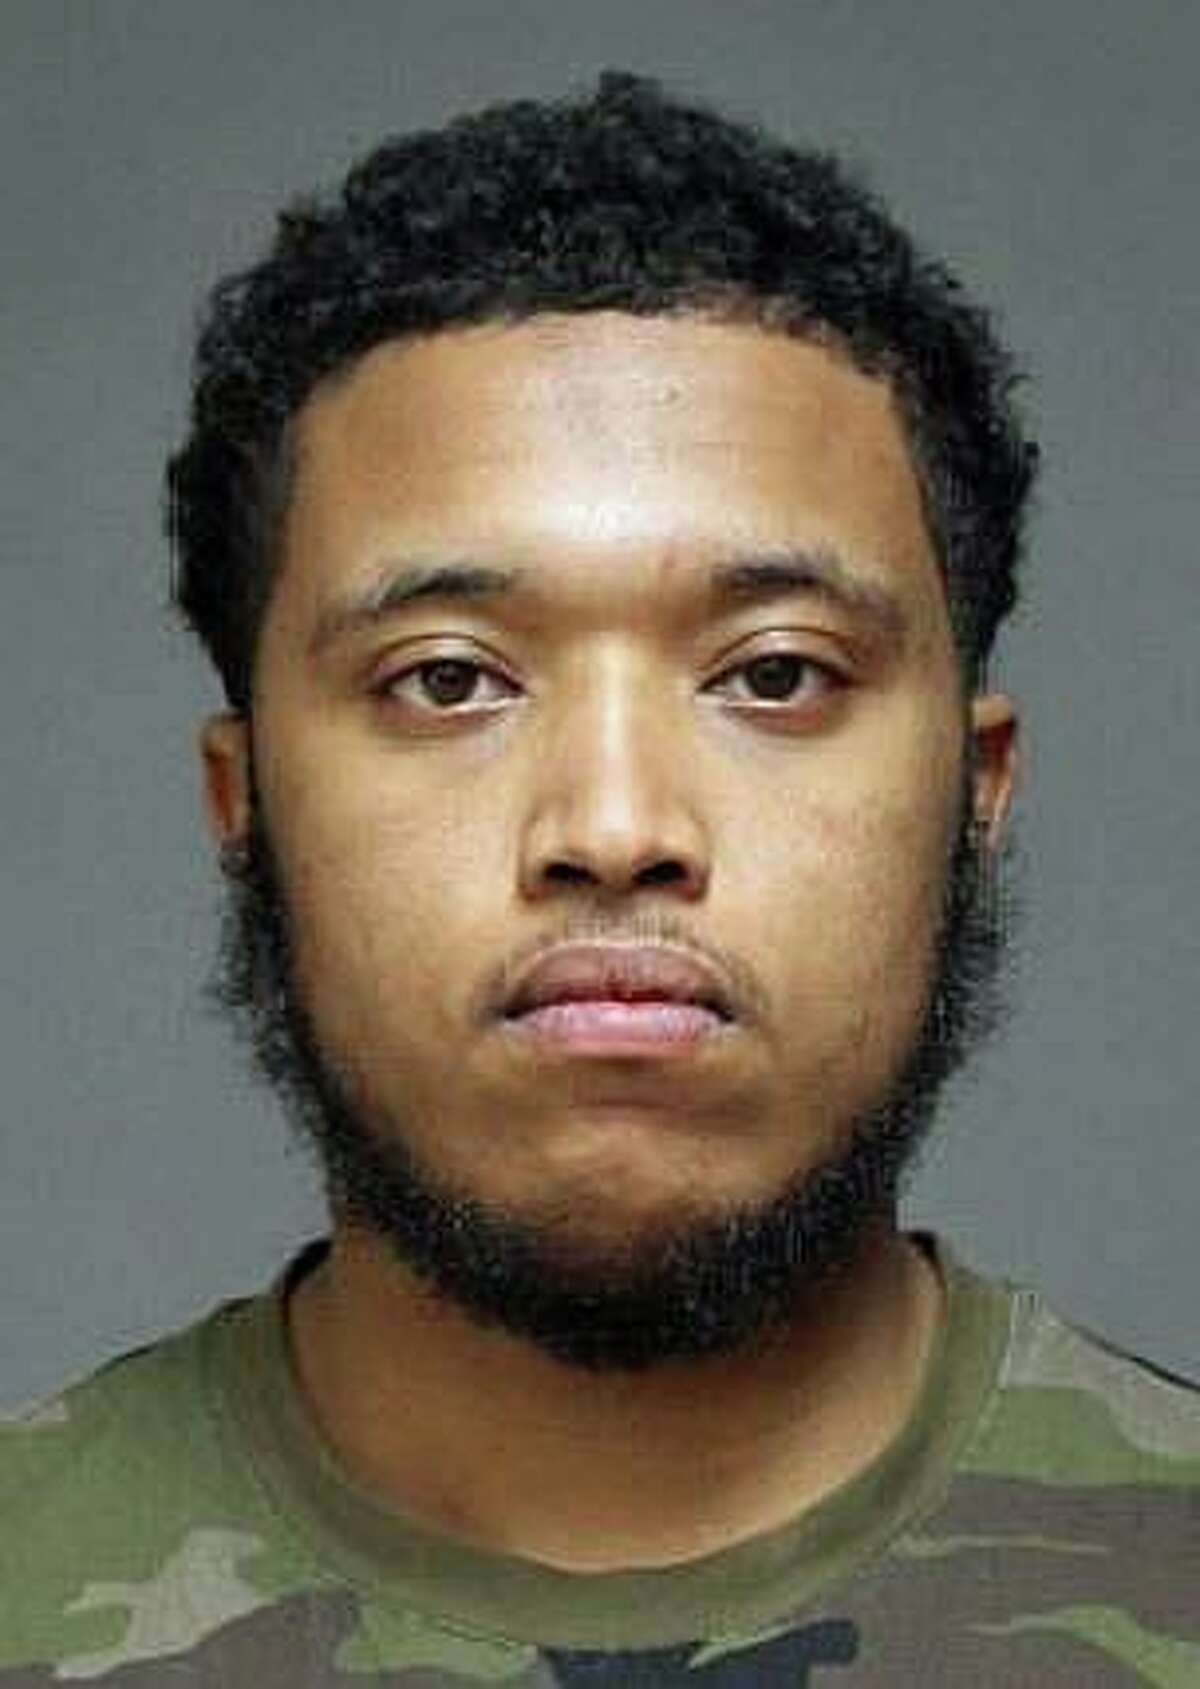 A 24-year-old Fairfield man has been arrested after 16 pounds of marijuana, packaging material and an undisclosed amount of U.S. currency were found in a Fairfield motel. On Feb. 12, Tajh Wiley was taken into custody in the parking lot of 1160 Kings Hwy Cutoff for second-degree forgery, illegal use of payment card, two counts of third-degree identity theft and fifth-degree larceny. During the months of October and November 2019, detectives identified Wiley as being part of a criminal organization involved in illegal activities including, but not limited to, identity theft, credit card fraud and narcotics distribution, Capt. Robert Kalamaras said in a release.